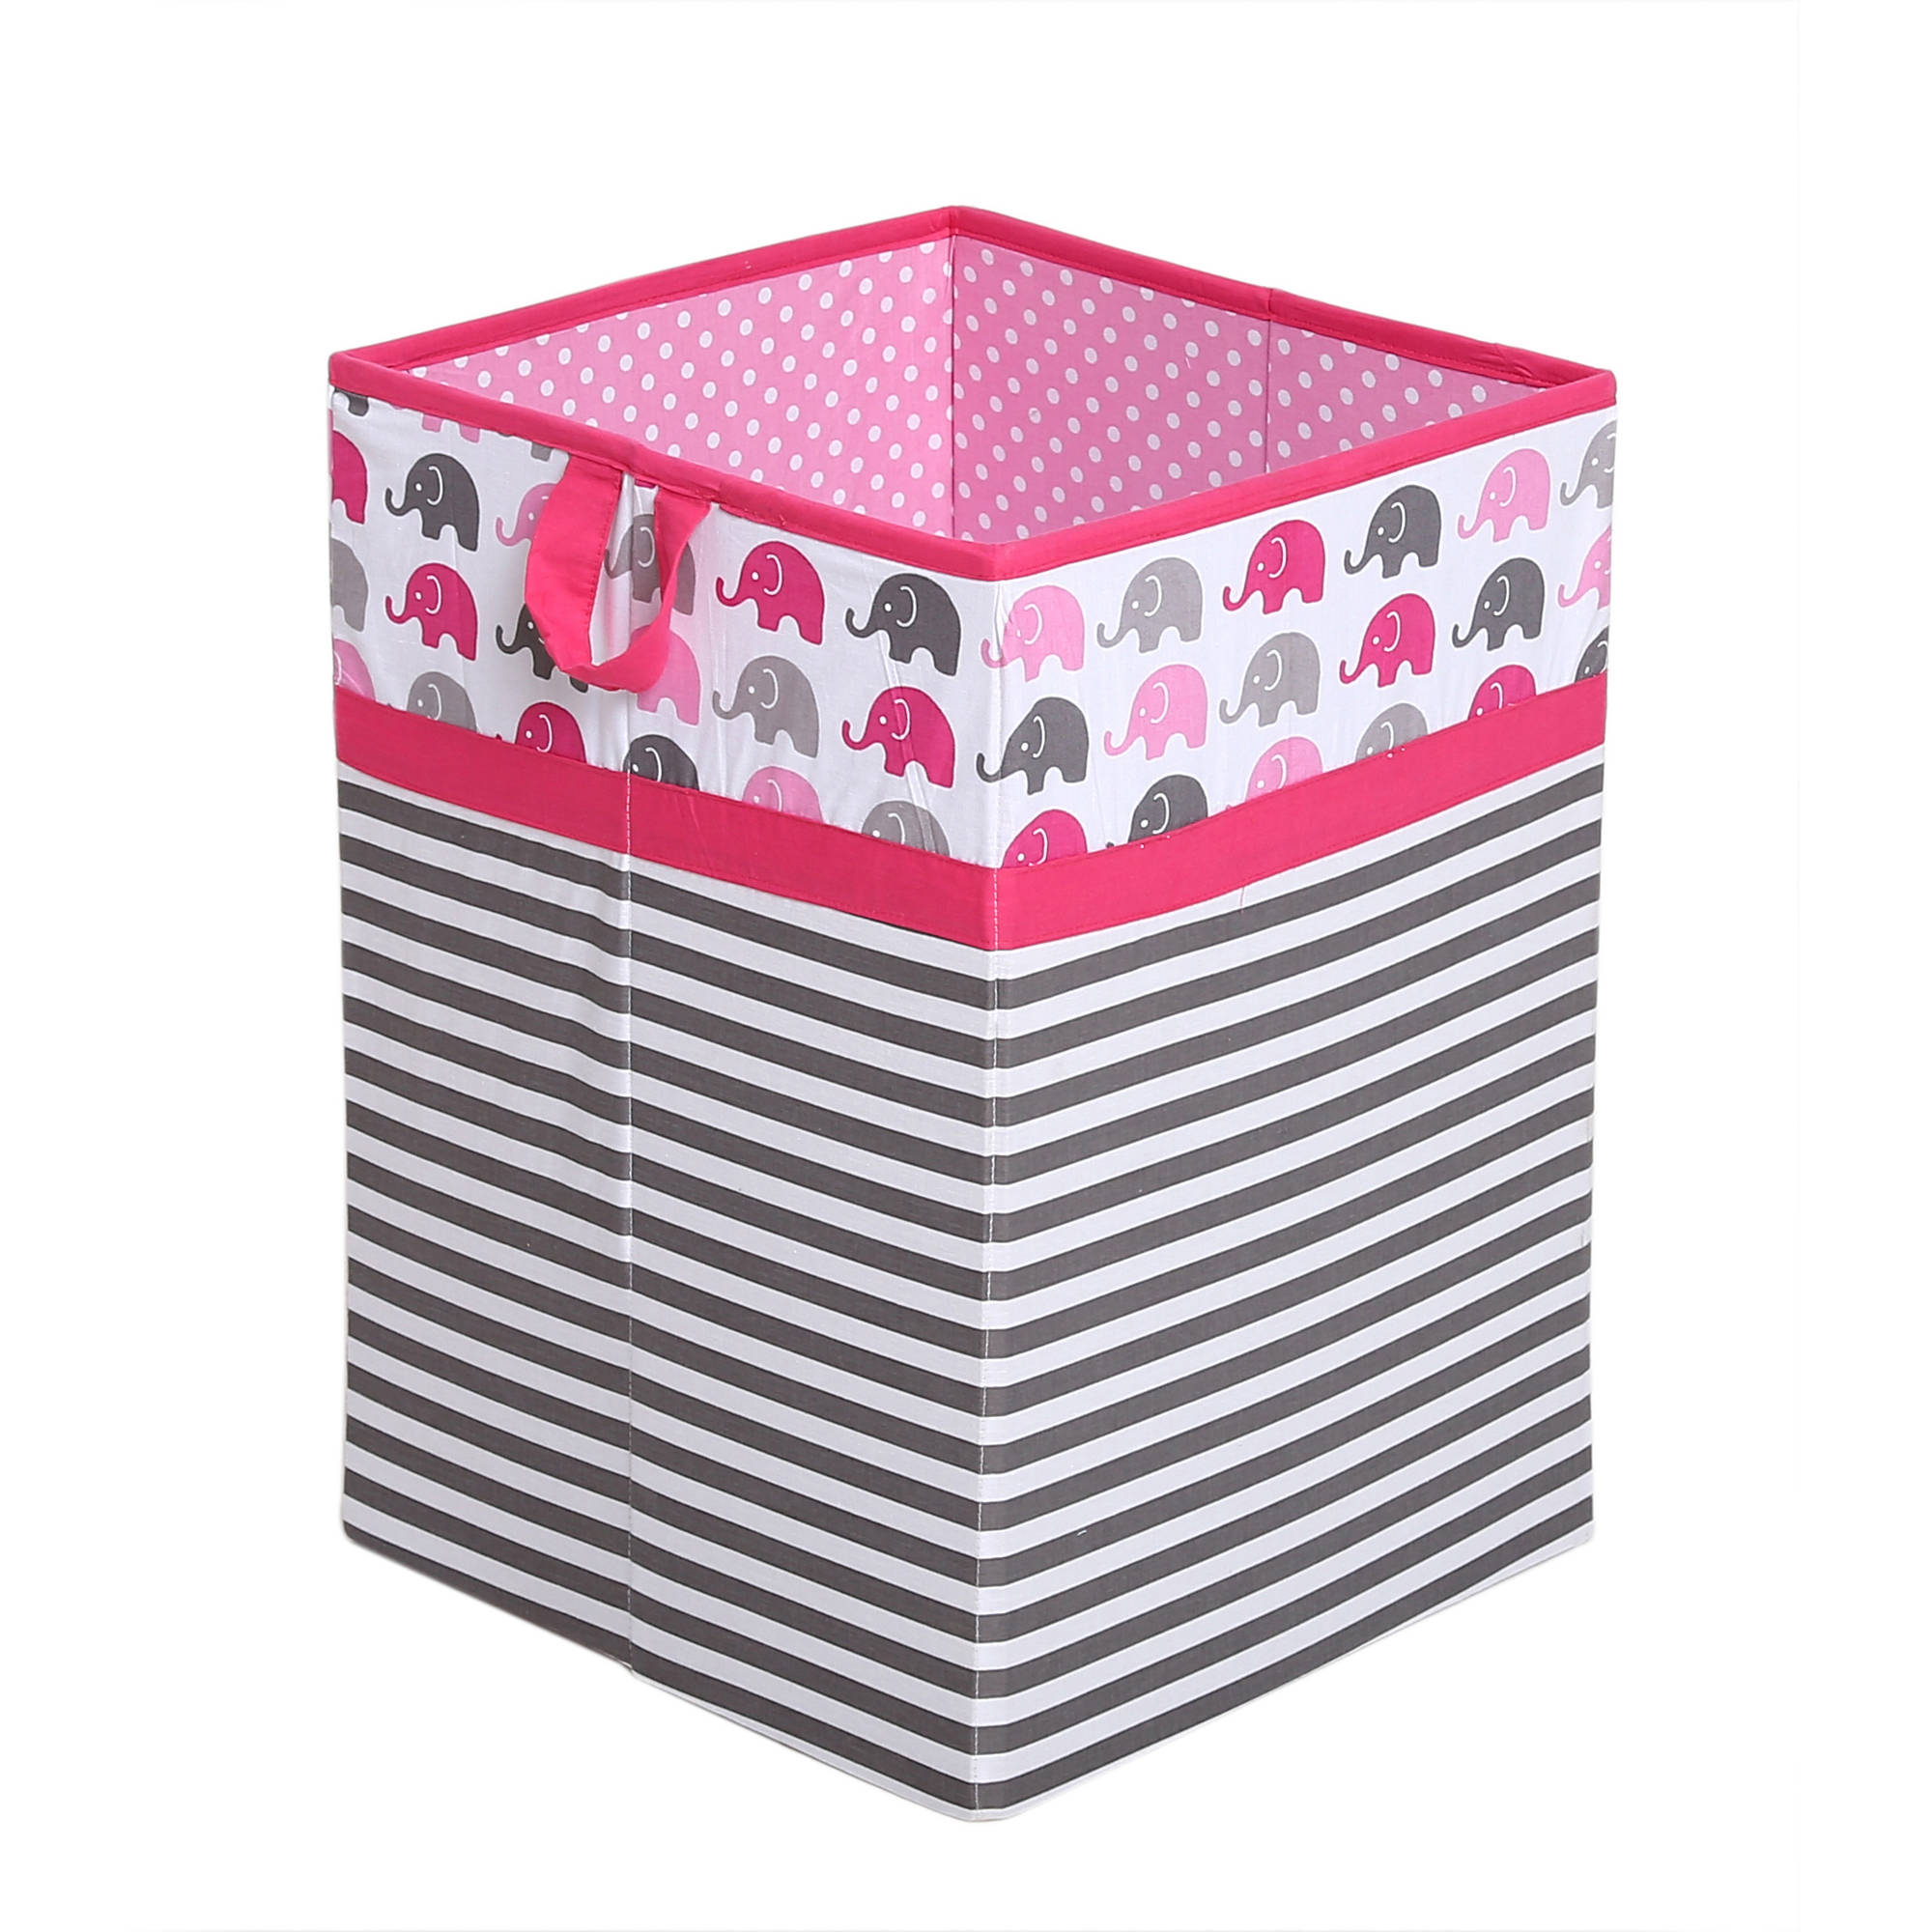 Bacati Elephants Pink Gray Cotton Percale Fabric covered Storage, Collapsible Hamper, 18 H x 13 W x 13 L inches by Bacati